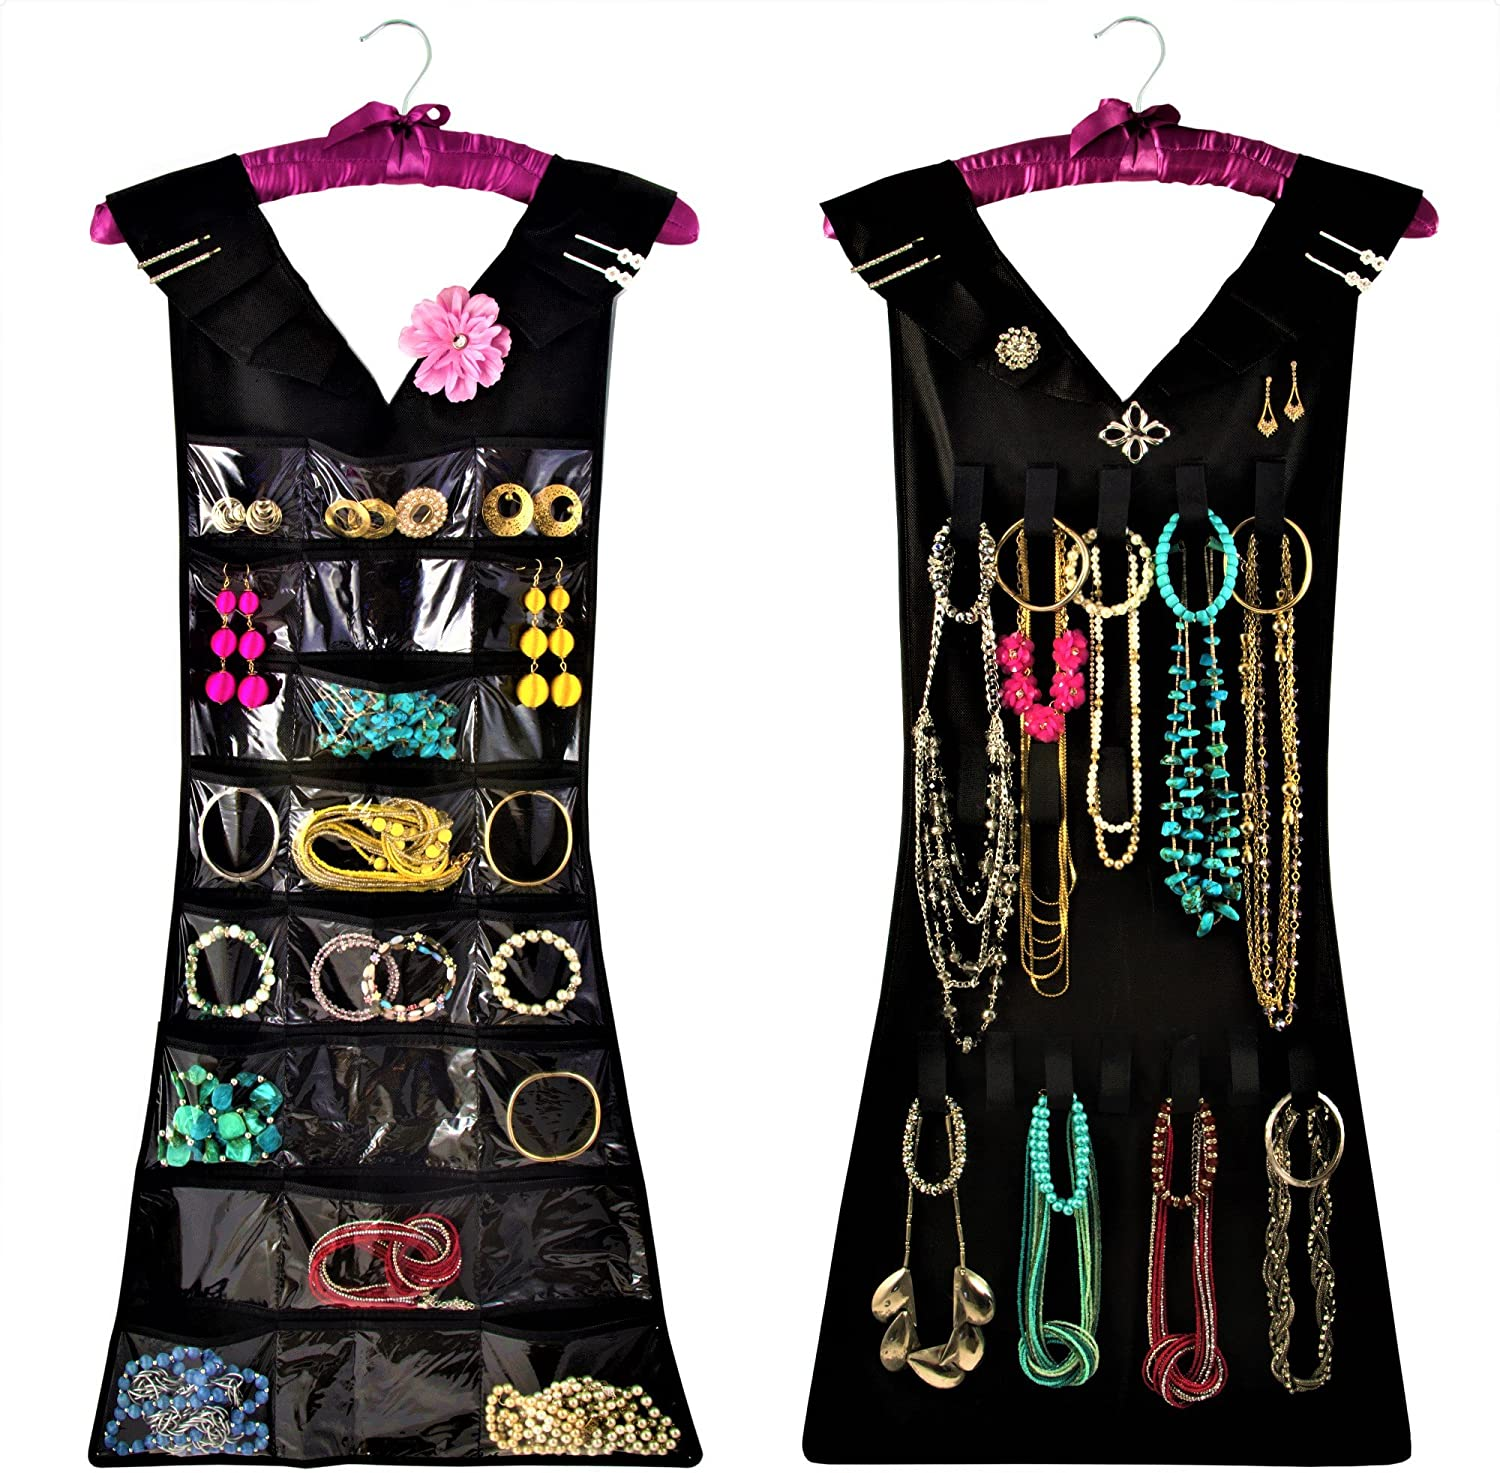 My Little Dress Hanging Jewelry Organizer with Satin Hanger, New & Improved, Closet Storage, 2 sided for Jewelry, Hair Accessories & Makeup (1-Black Dress & Pink Satin Hanger, 24 pockets 17 loops)